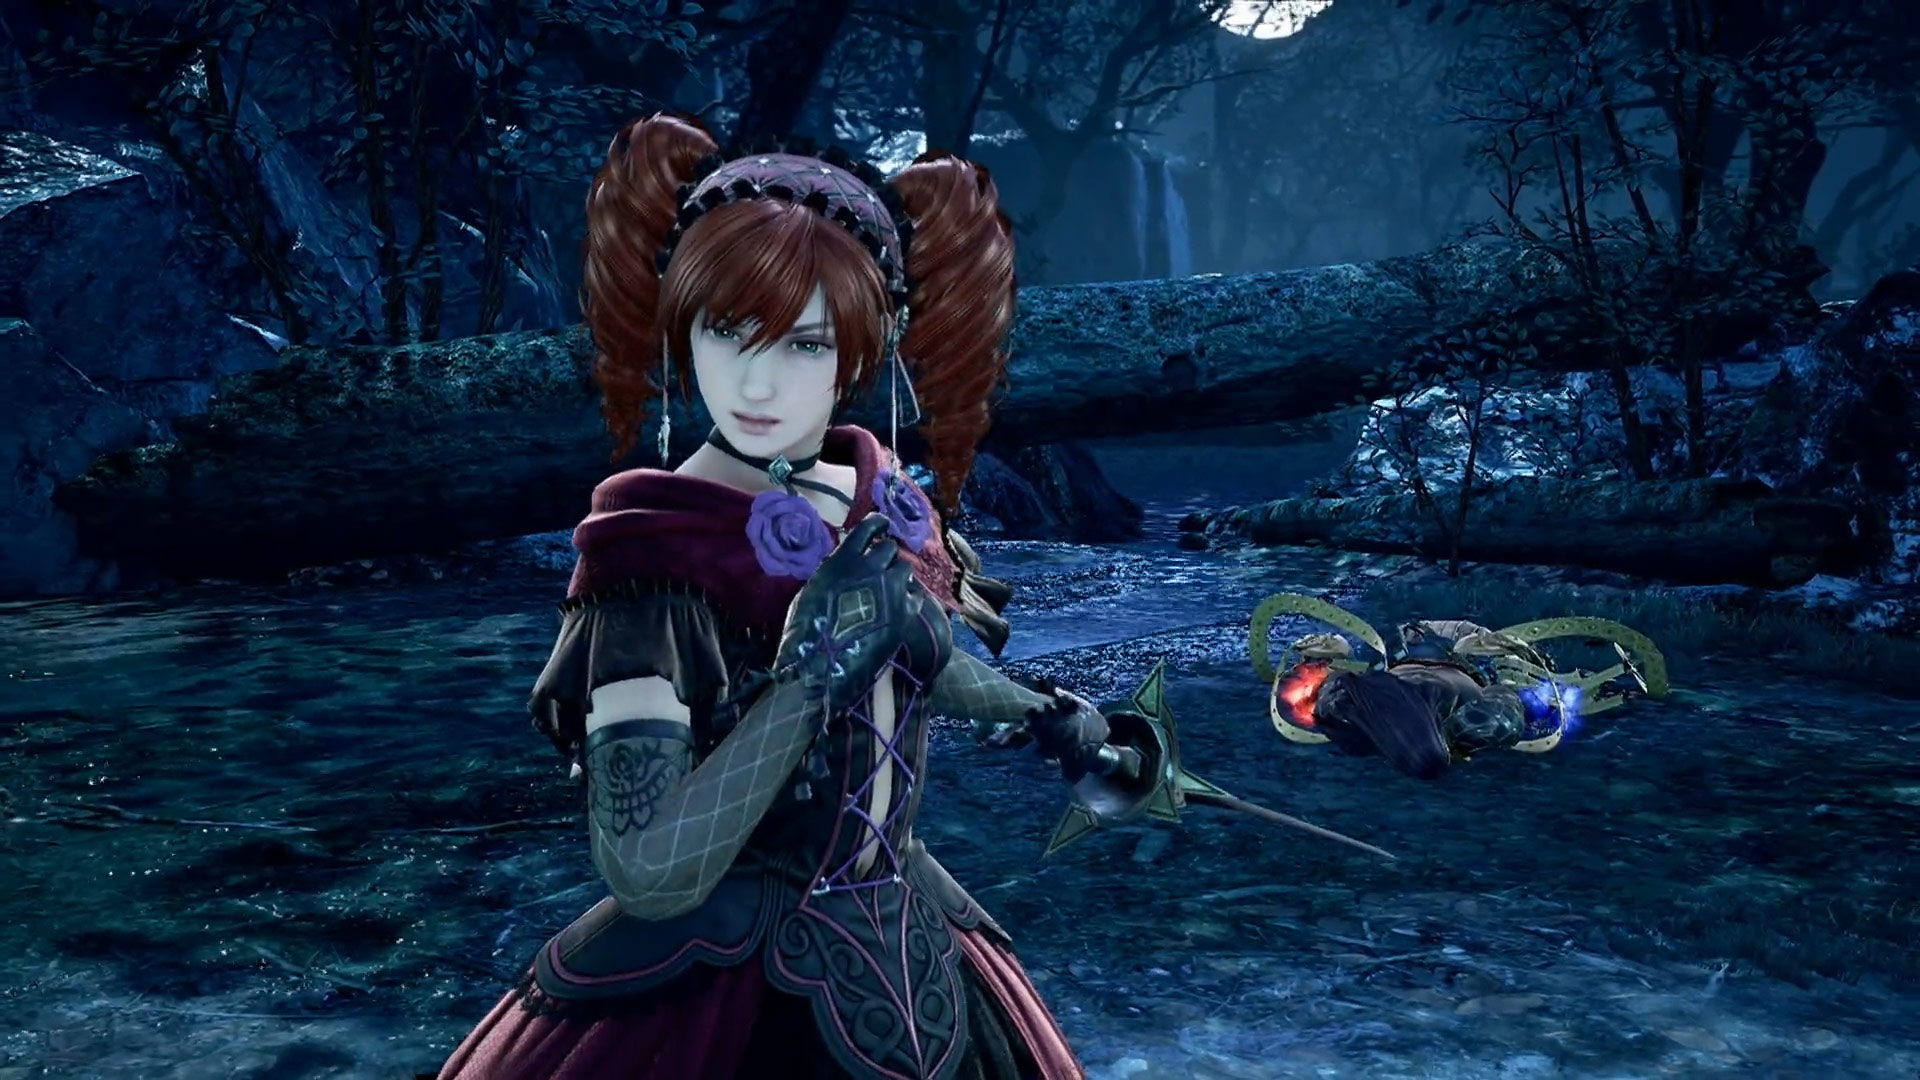 Soul Calibur 6 Amy Reveal 9 out of 9 image gallery